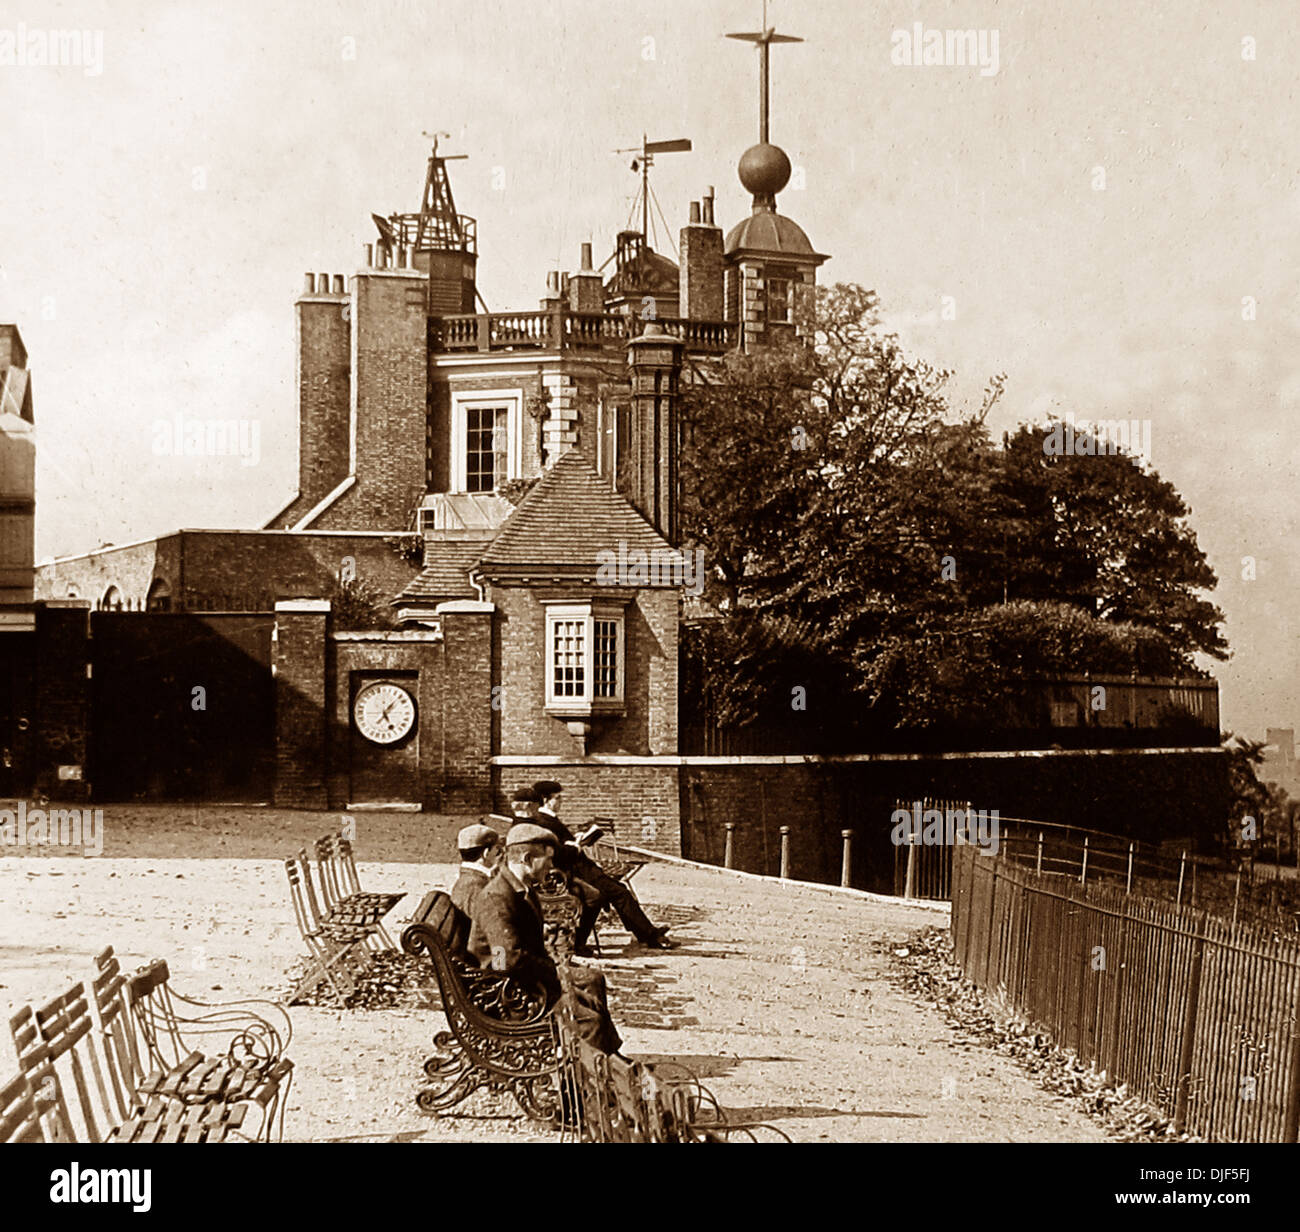 Greenwich Observatory and Time Ball Victorian period - Stock Image